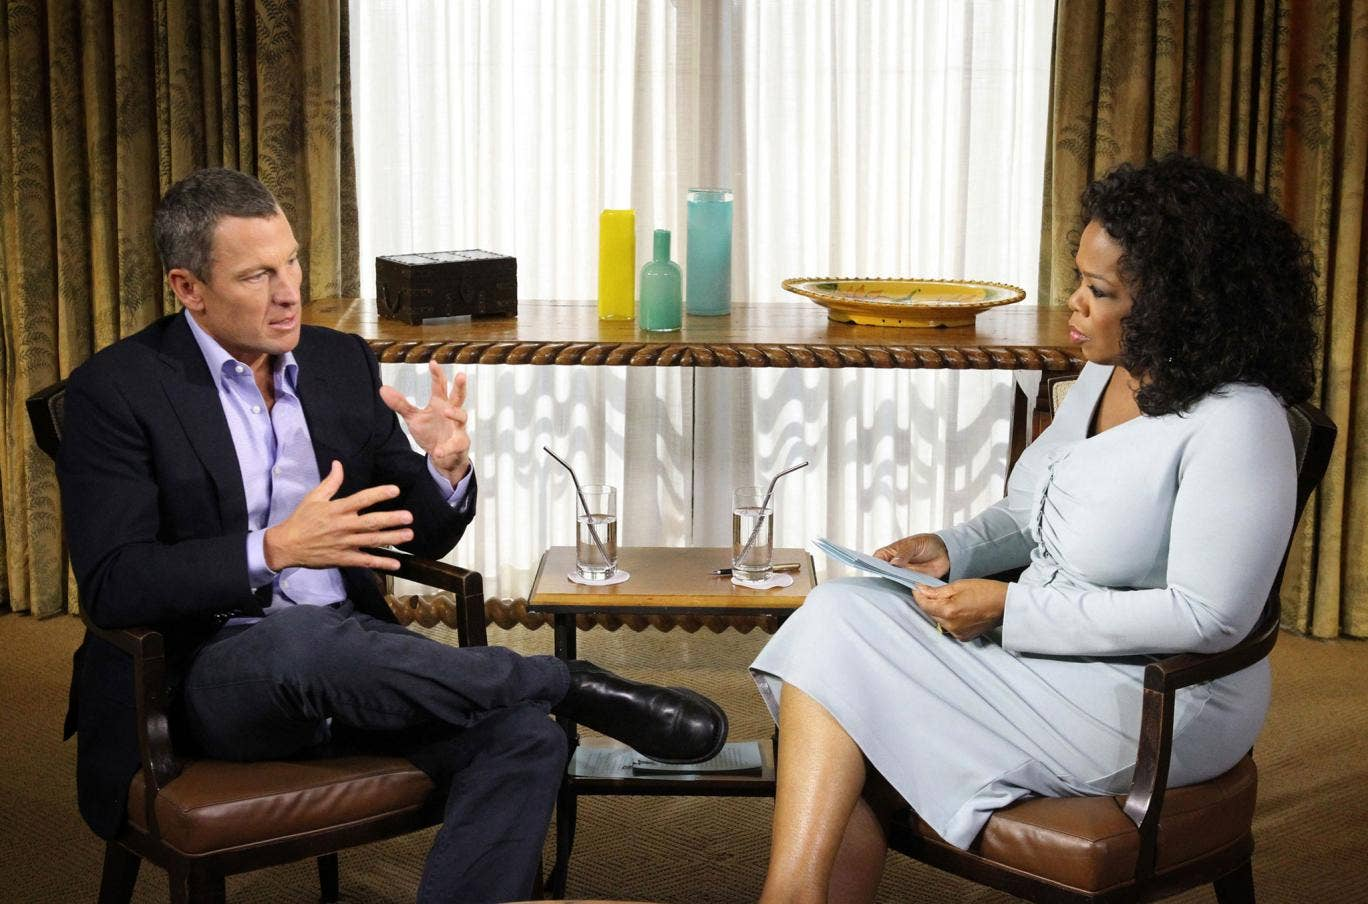 Oprah Winfrey speaks with Lance Armstrong during an interview regarding the controversy surrounding his cycling career